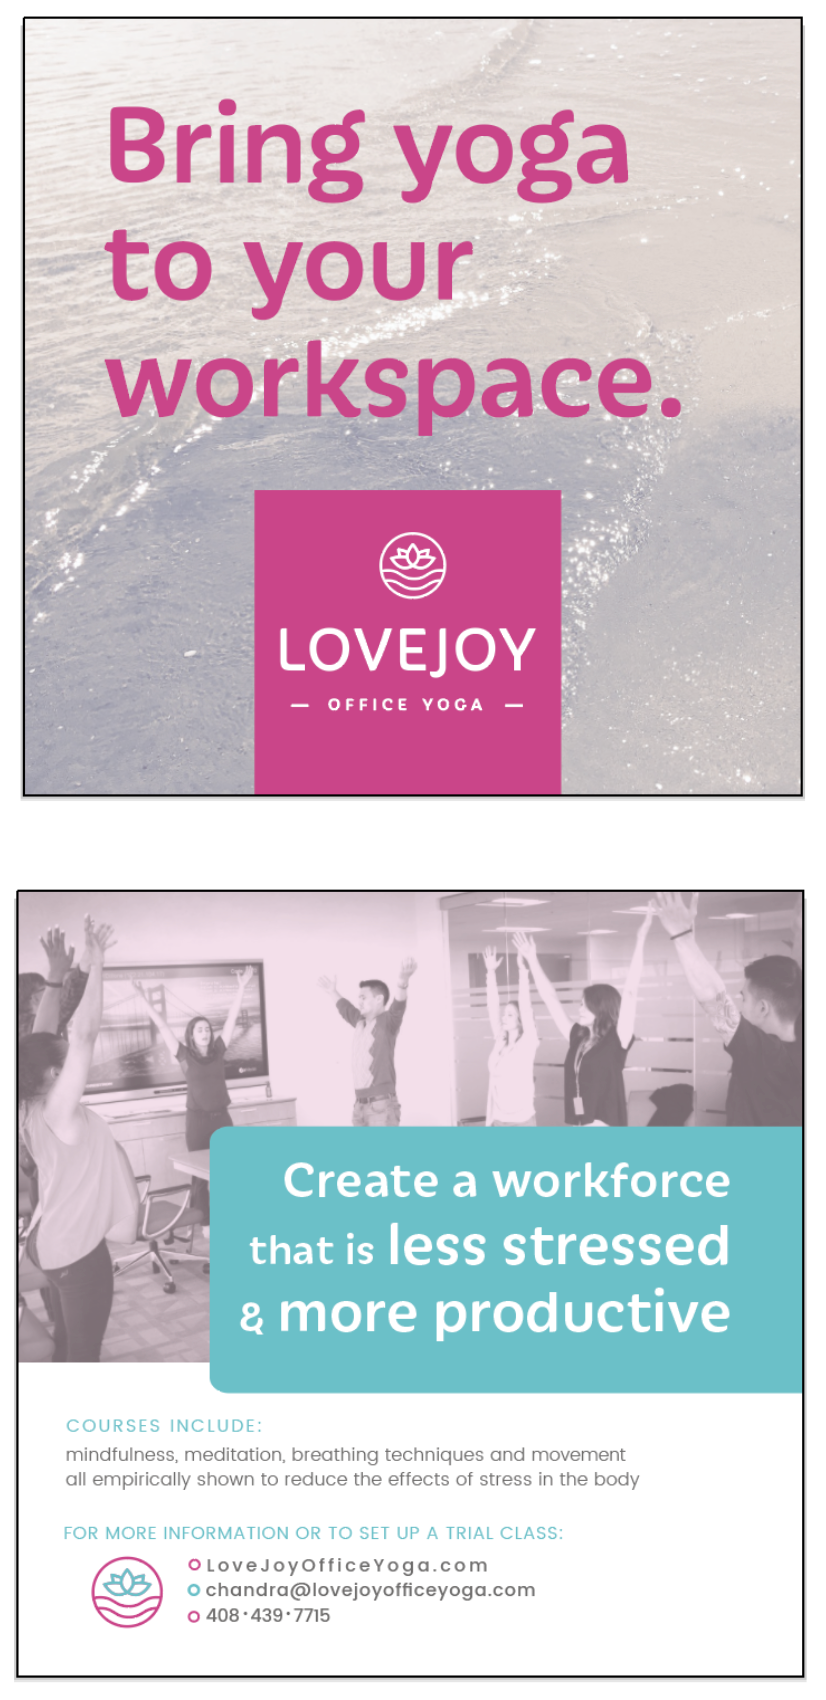 - client: Lovejoy Office Yoga, Sacramentopromotional flyer